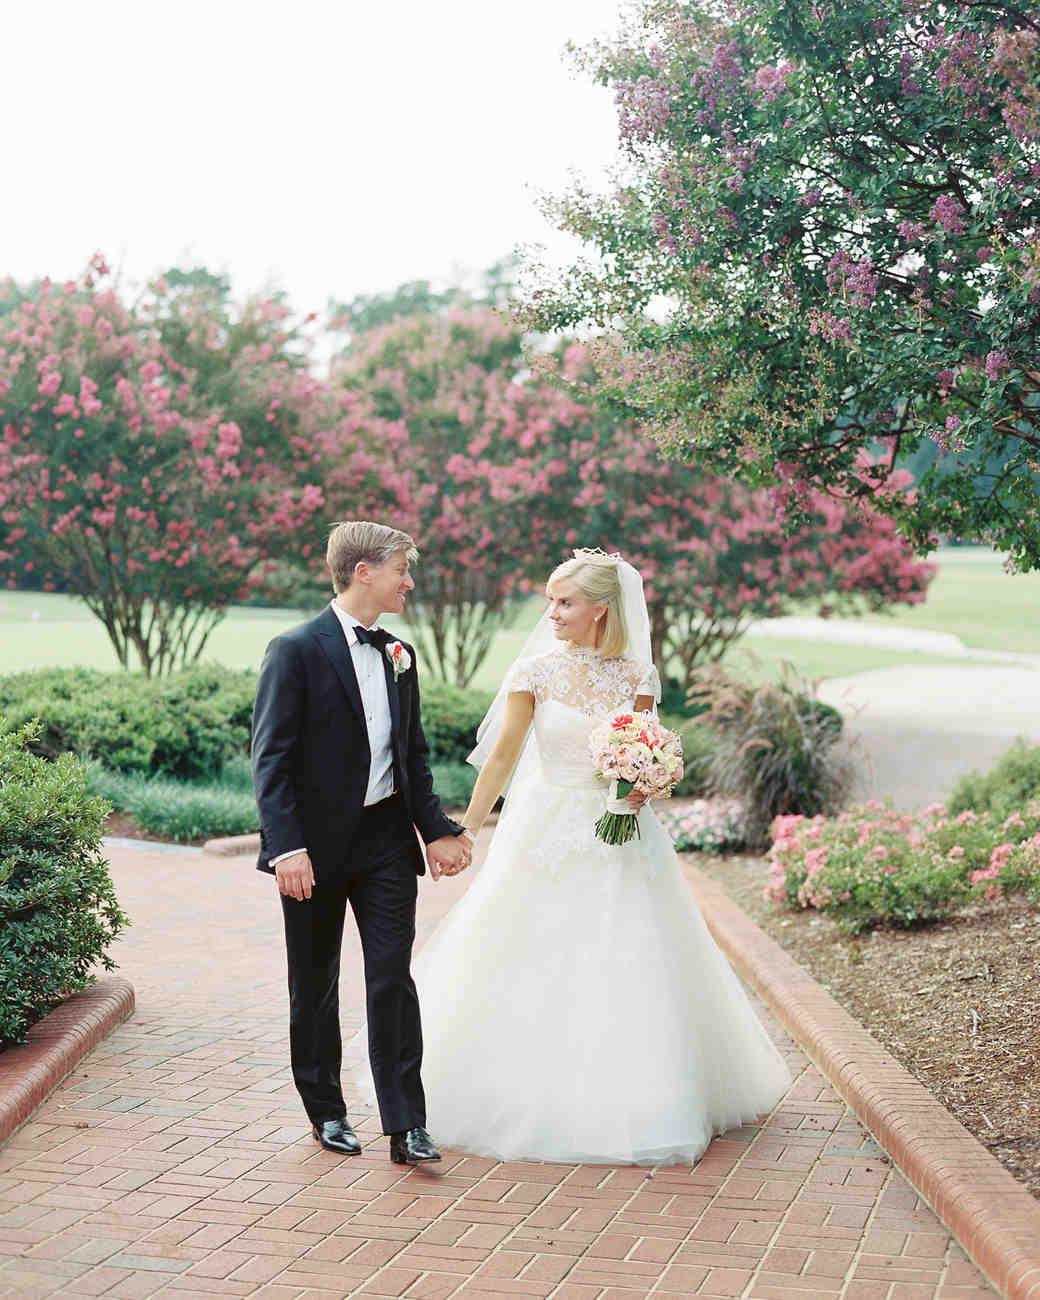 molly-patrick-wedding-couple-3295-s111760-0115.jpg